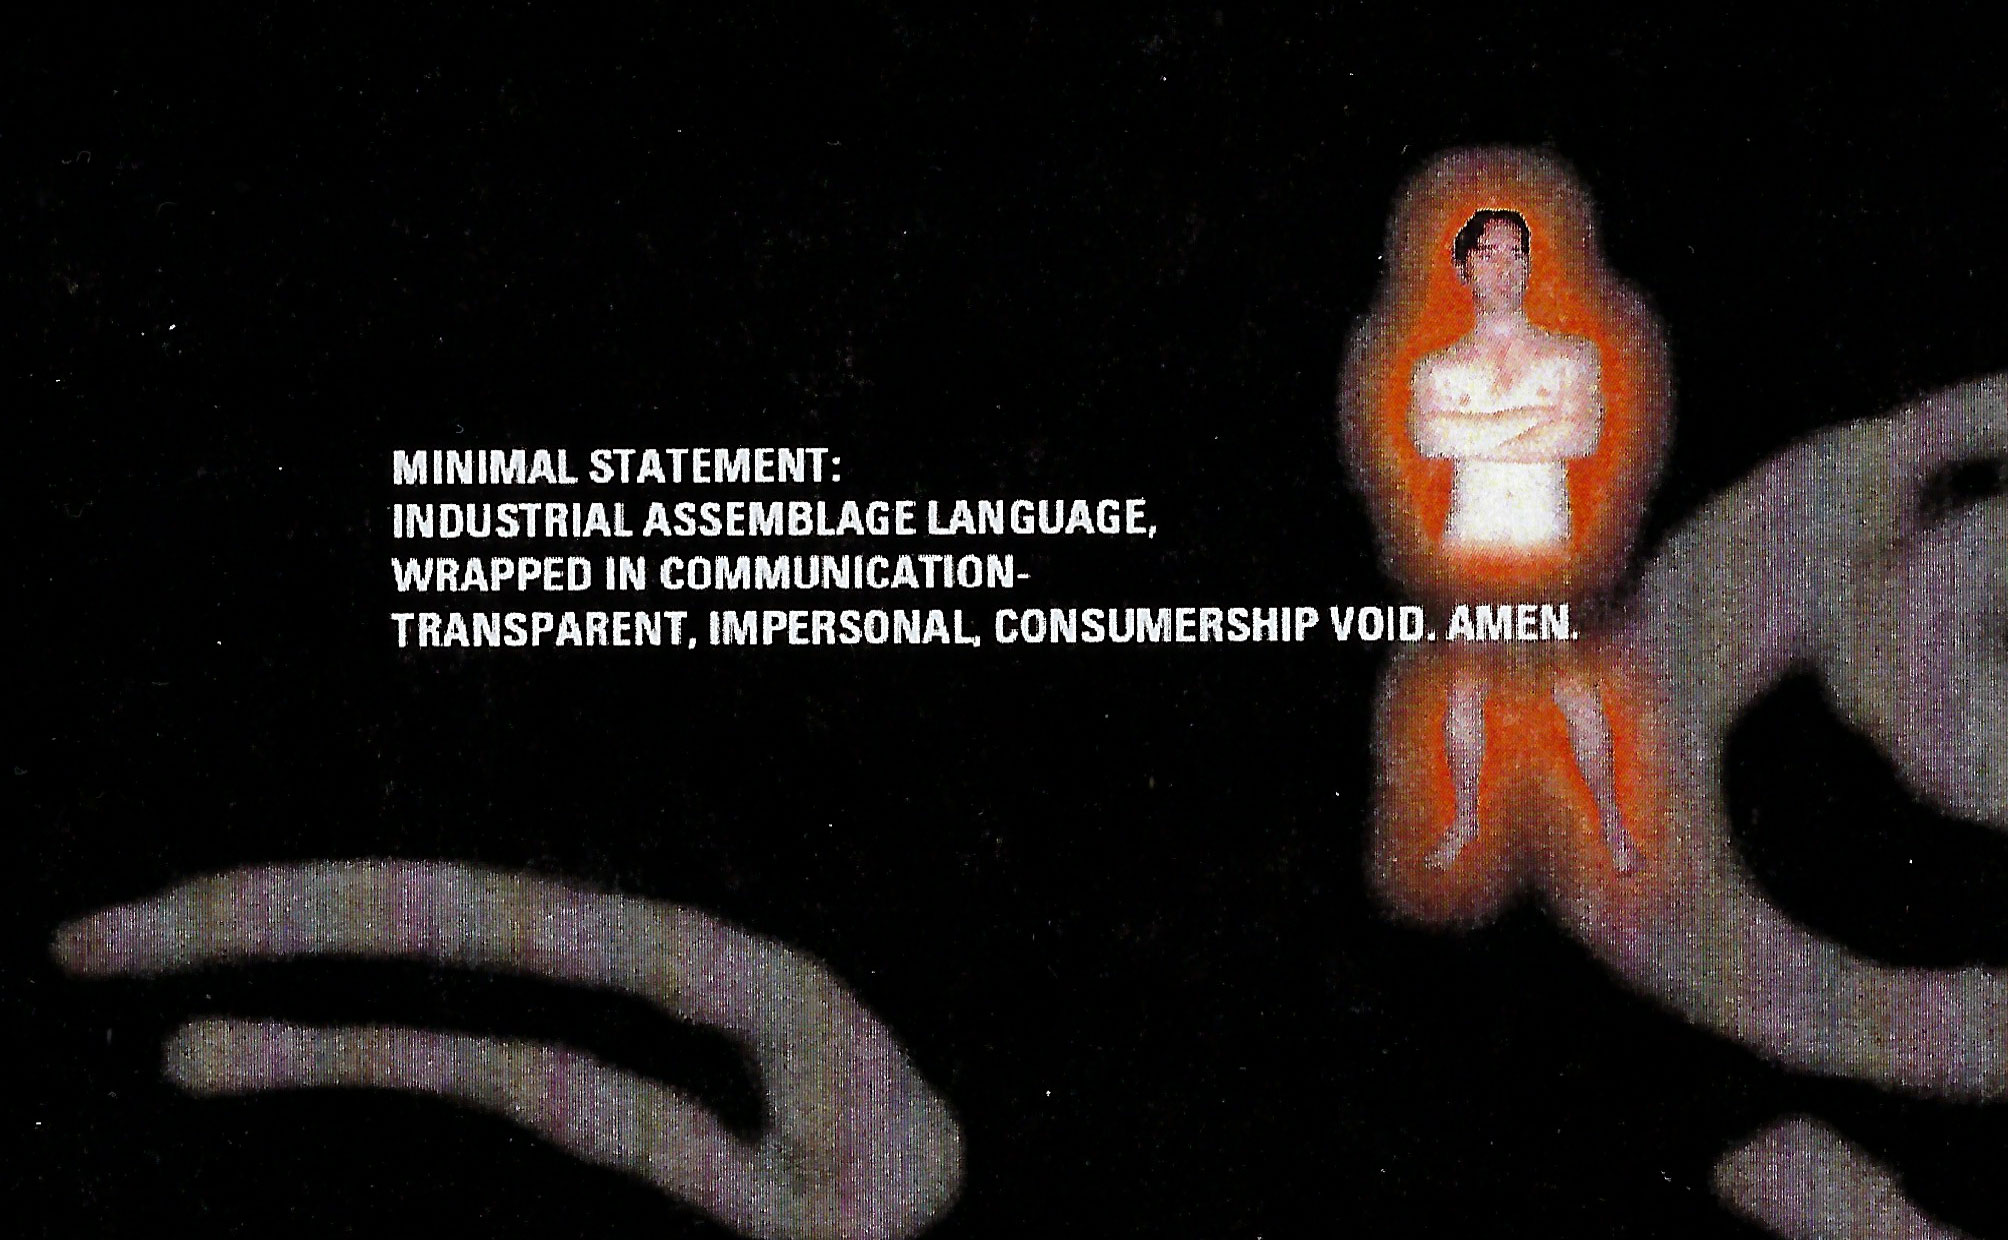 Minimal Statement: Industrial assemblage language, wrapped in communication - transparent, impersonal, consumership void. Amen.